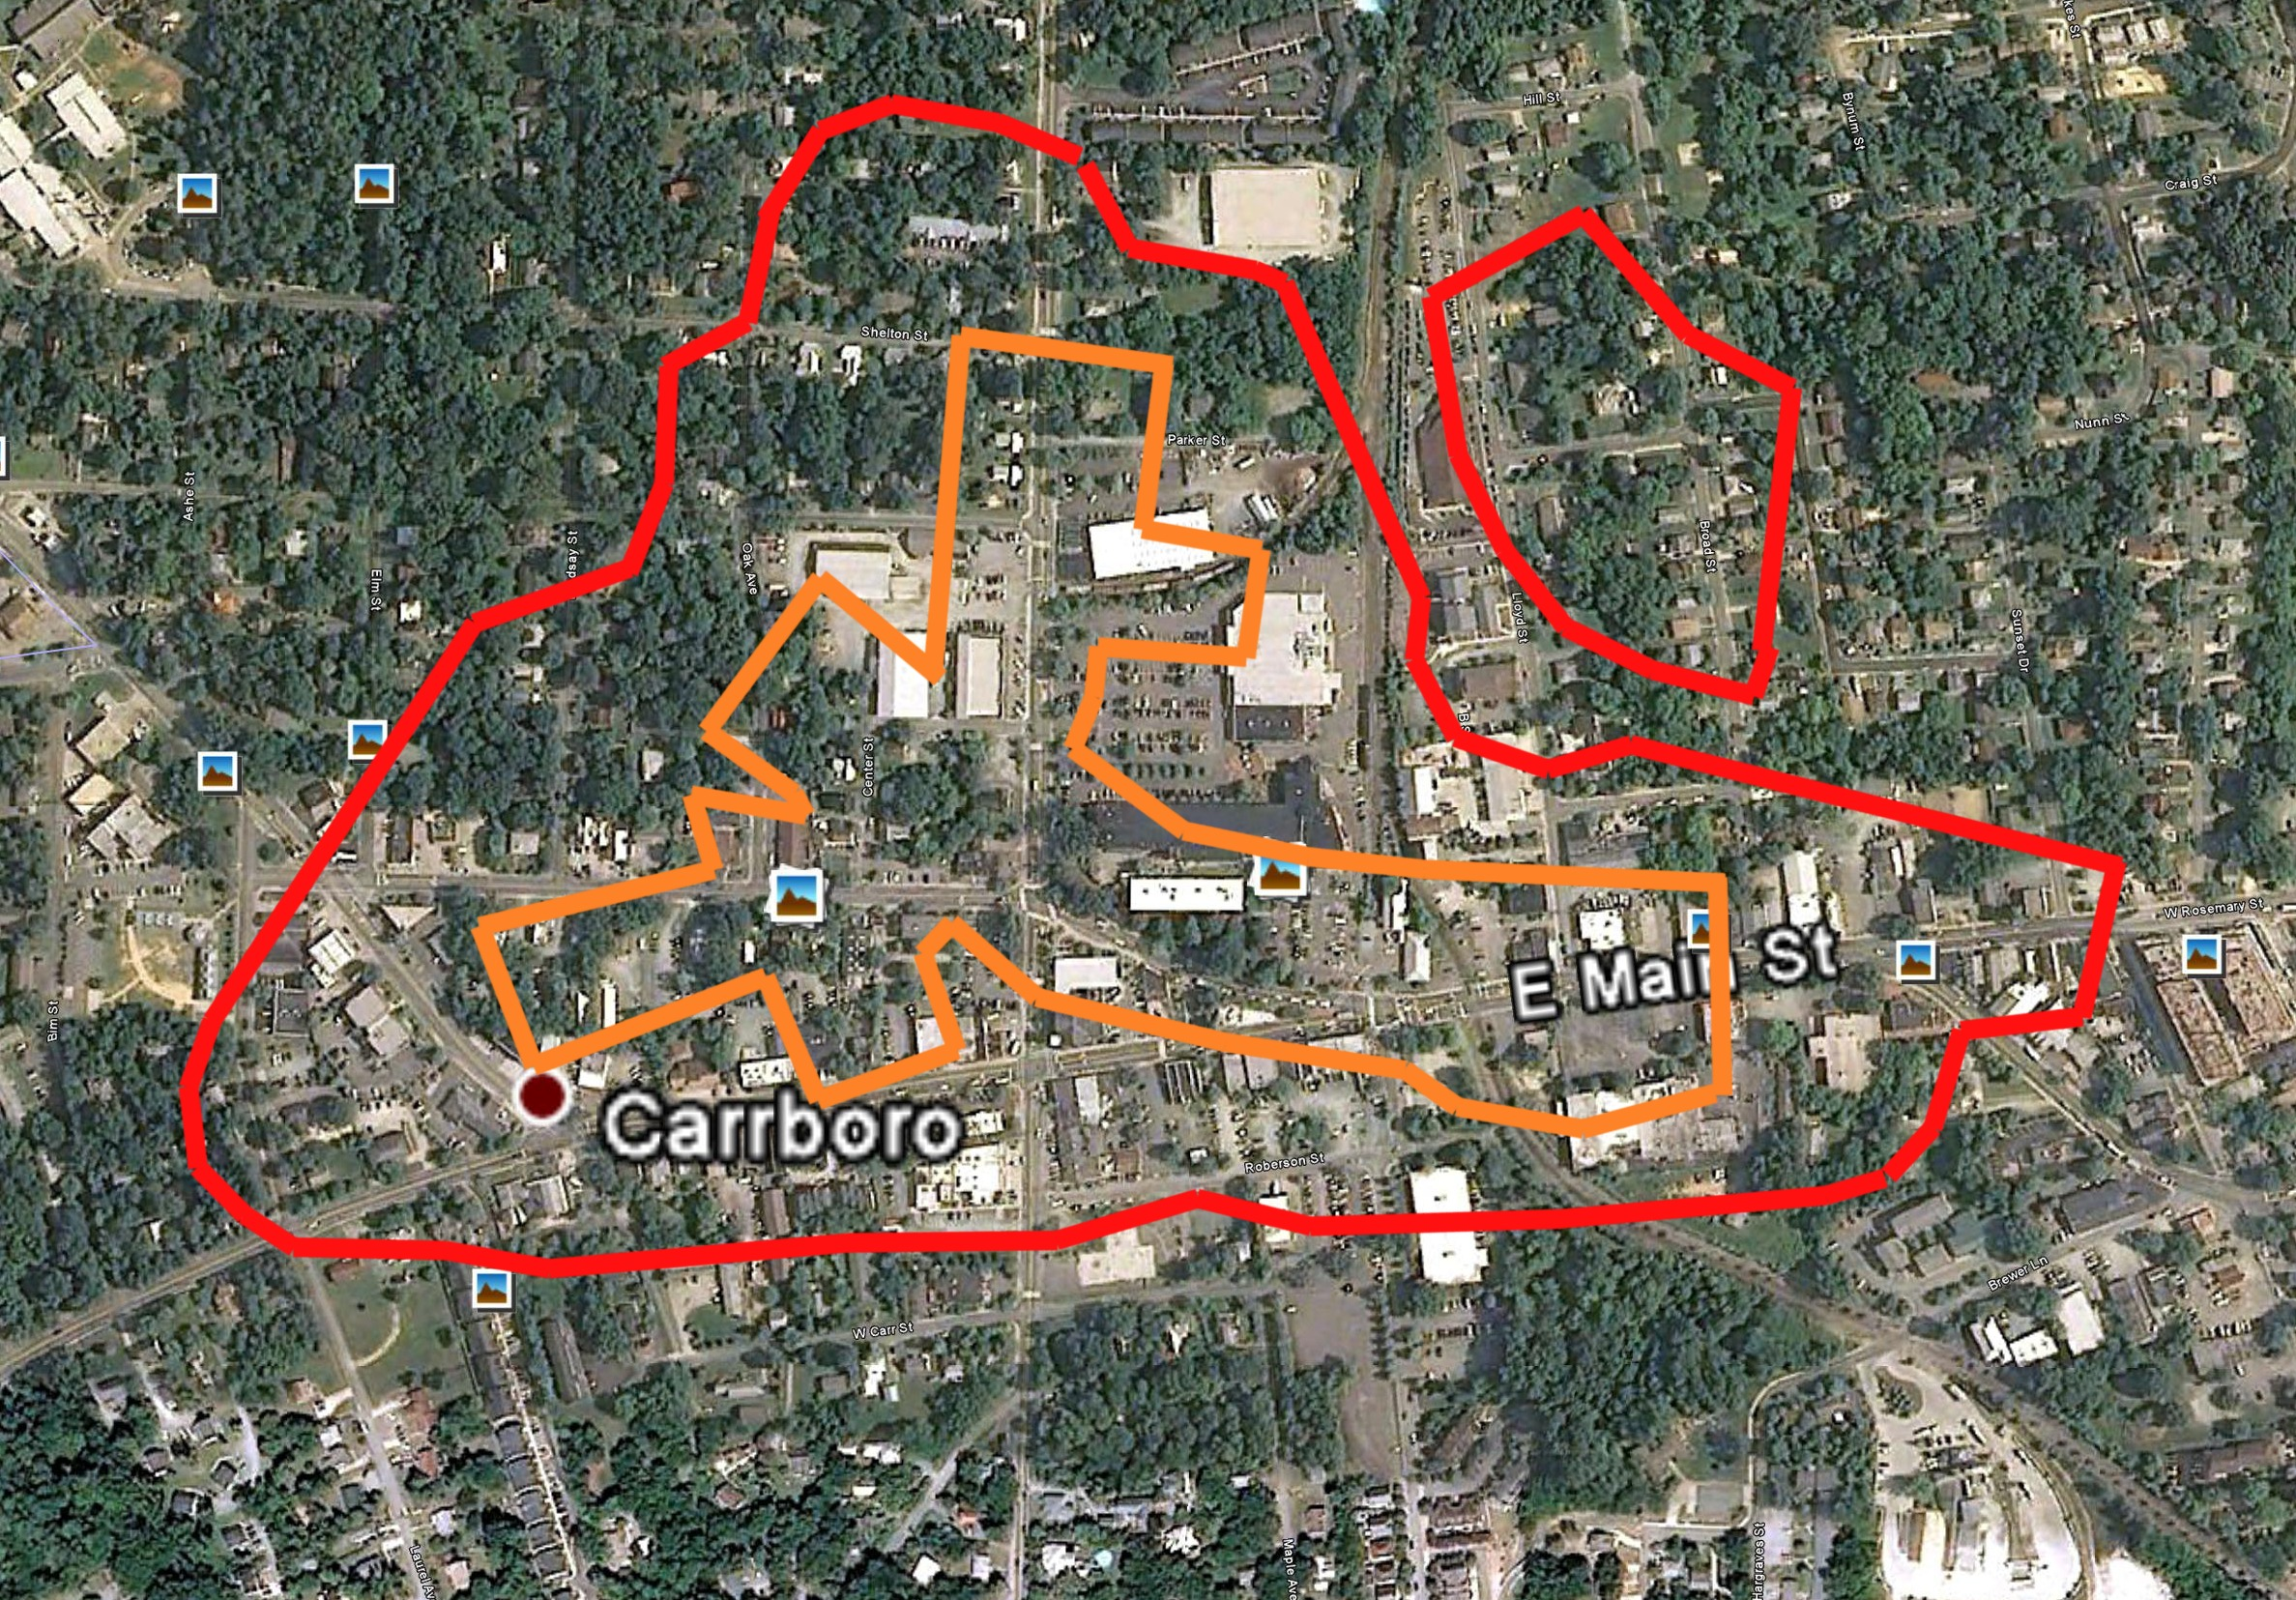 Carrboro Downtown and Southpoint Mall Footprint